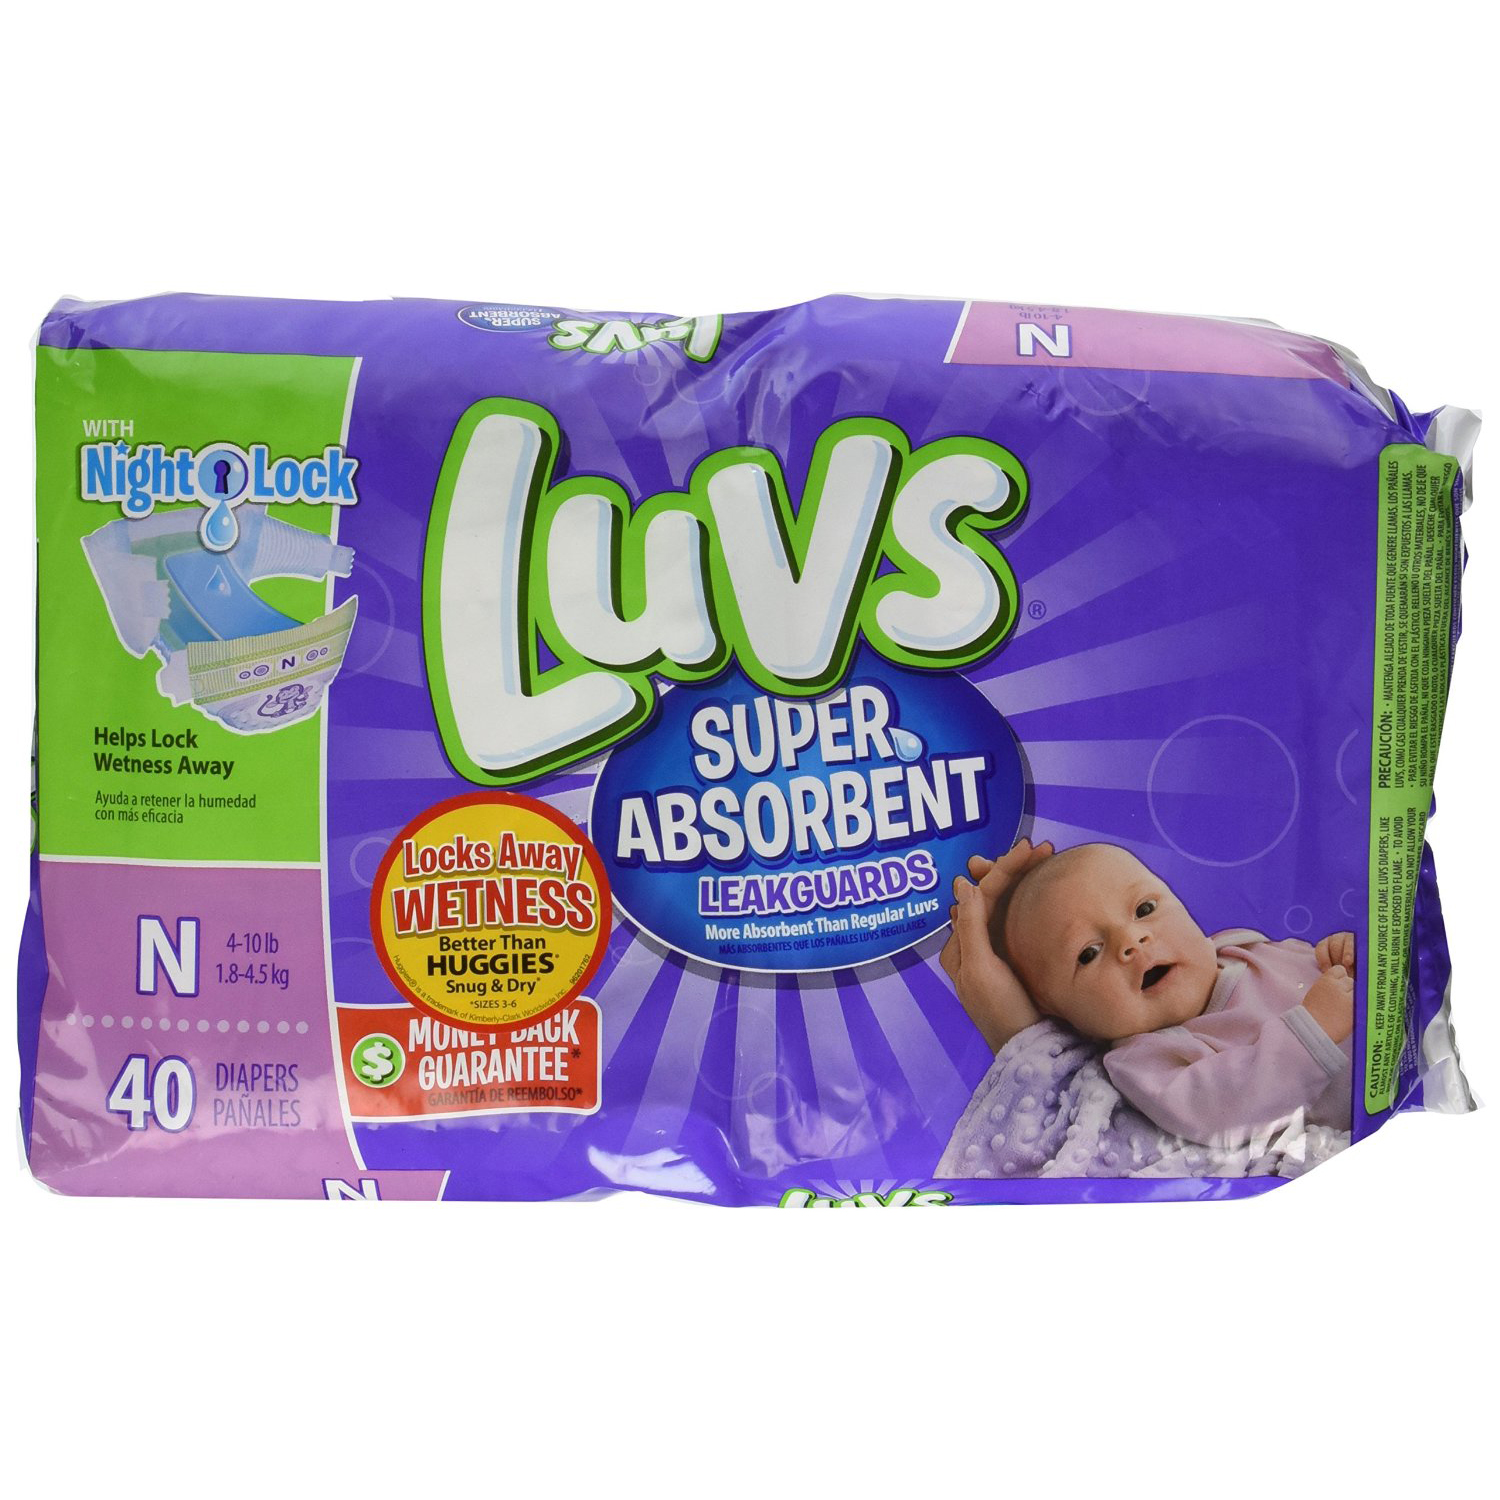 Luvs Super Absorbent Leakguards - $16.02